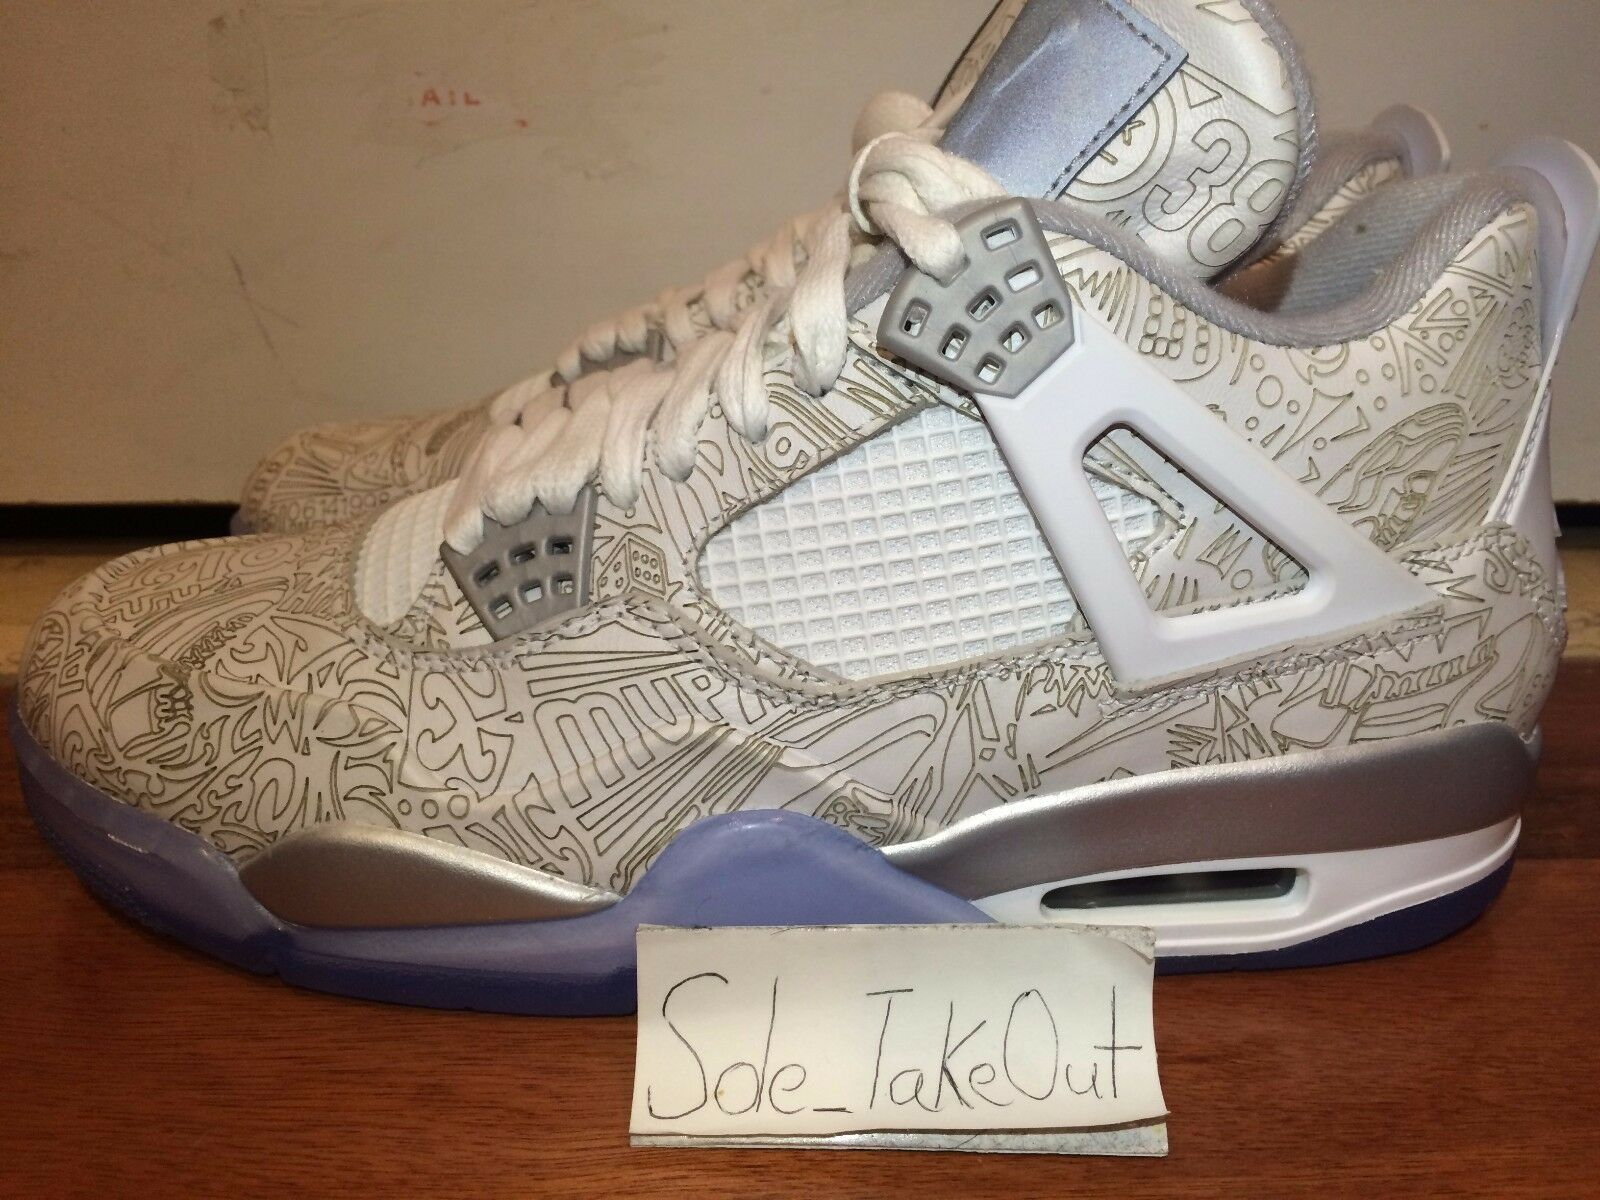 JORDAN 4 RETRO LASER  AIR 30TH ANNIVERSARY  705333-105 SZ 8-14 hombres